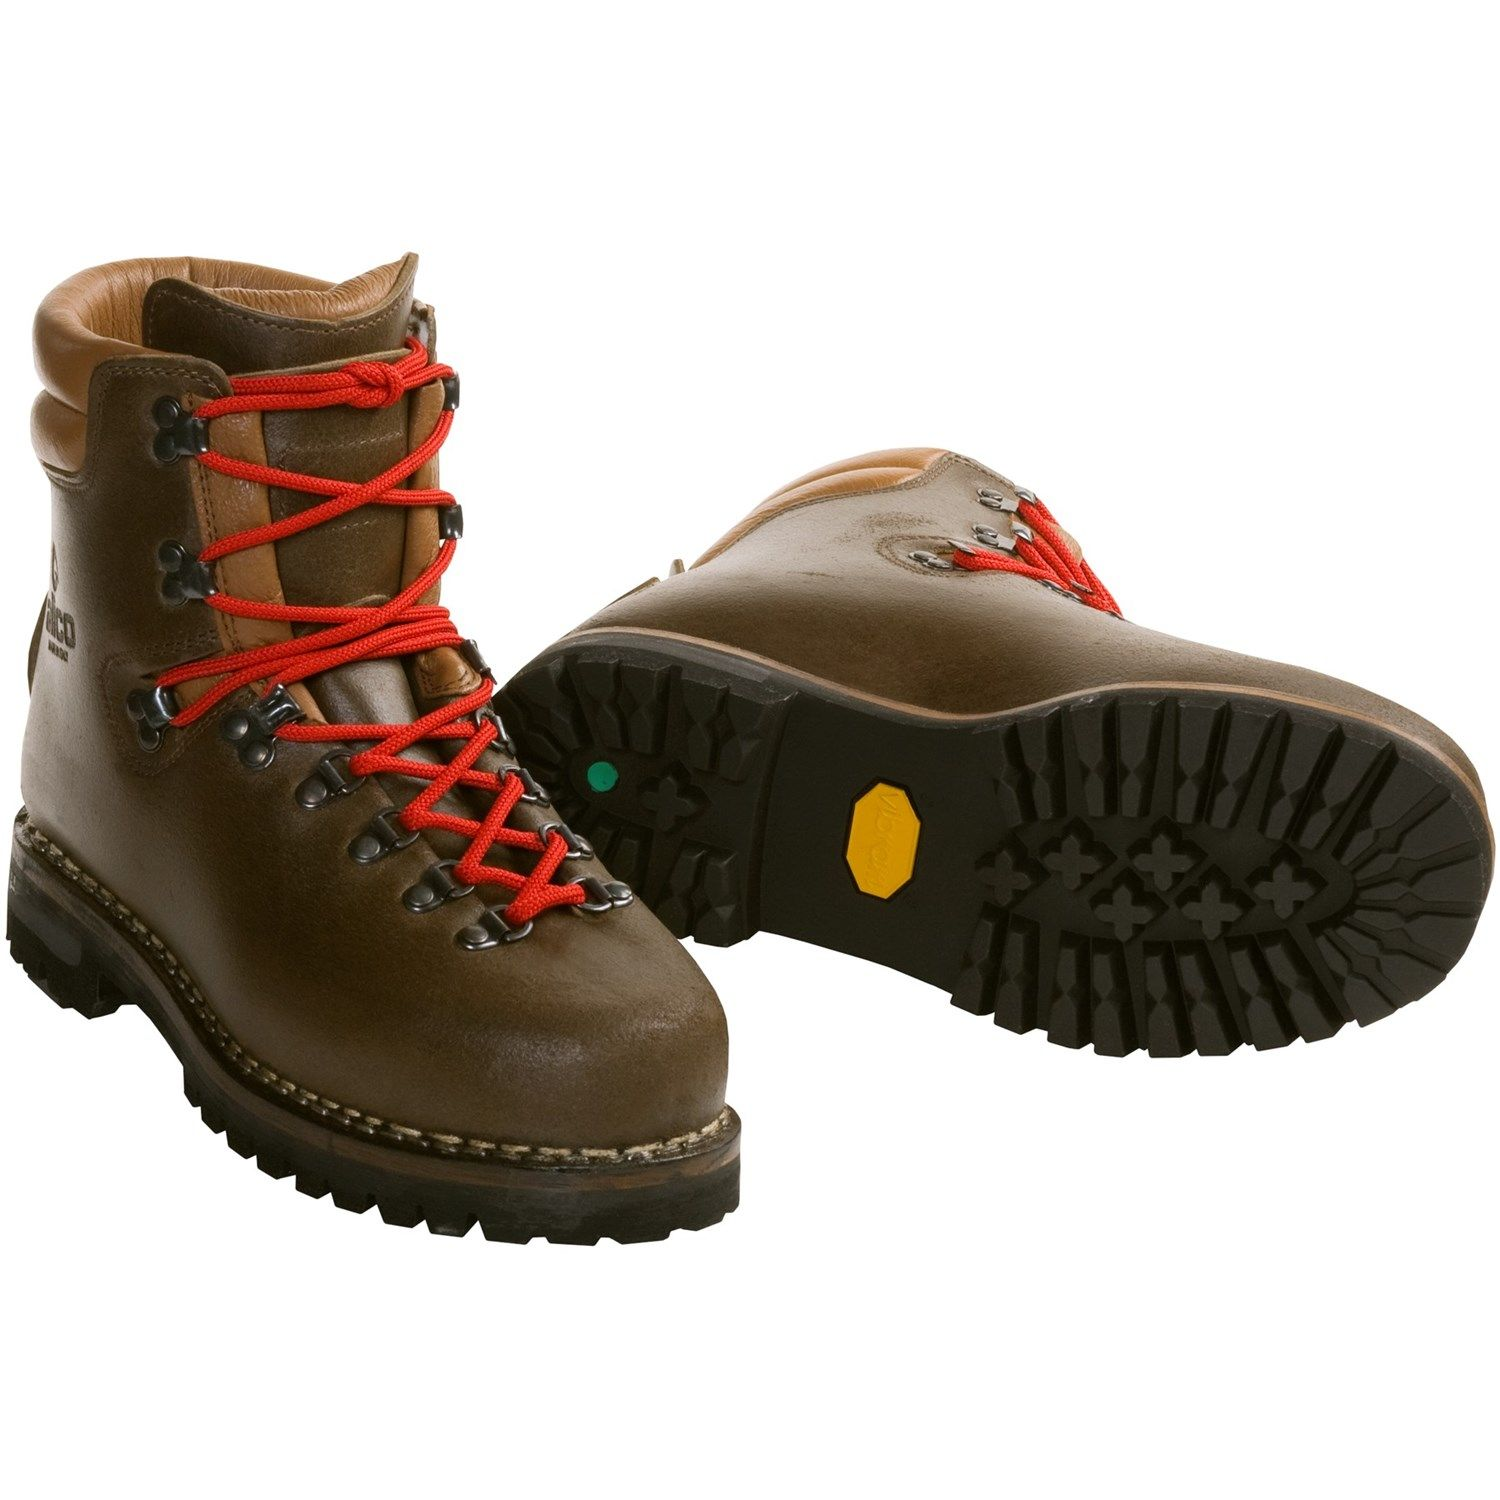 Alico New Guide Mountaineering Boots - Leather (For Men) | Leather ...